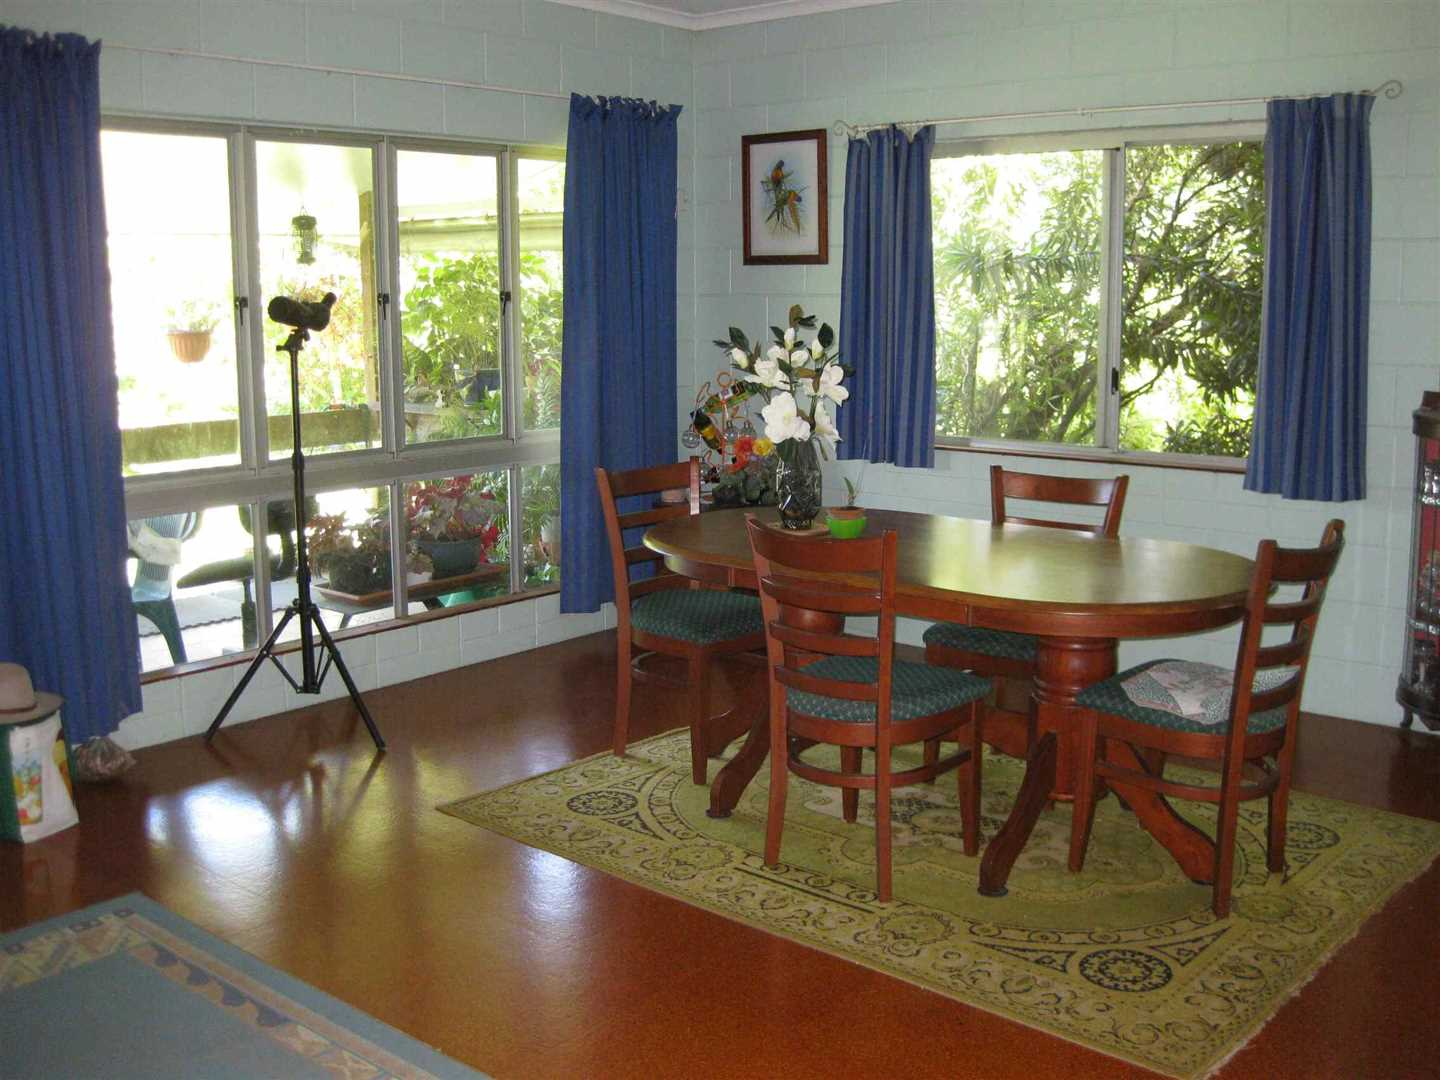 Inside view of part of home showing the dining area